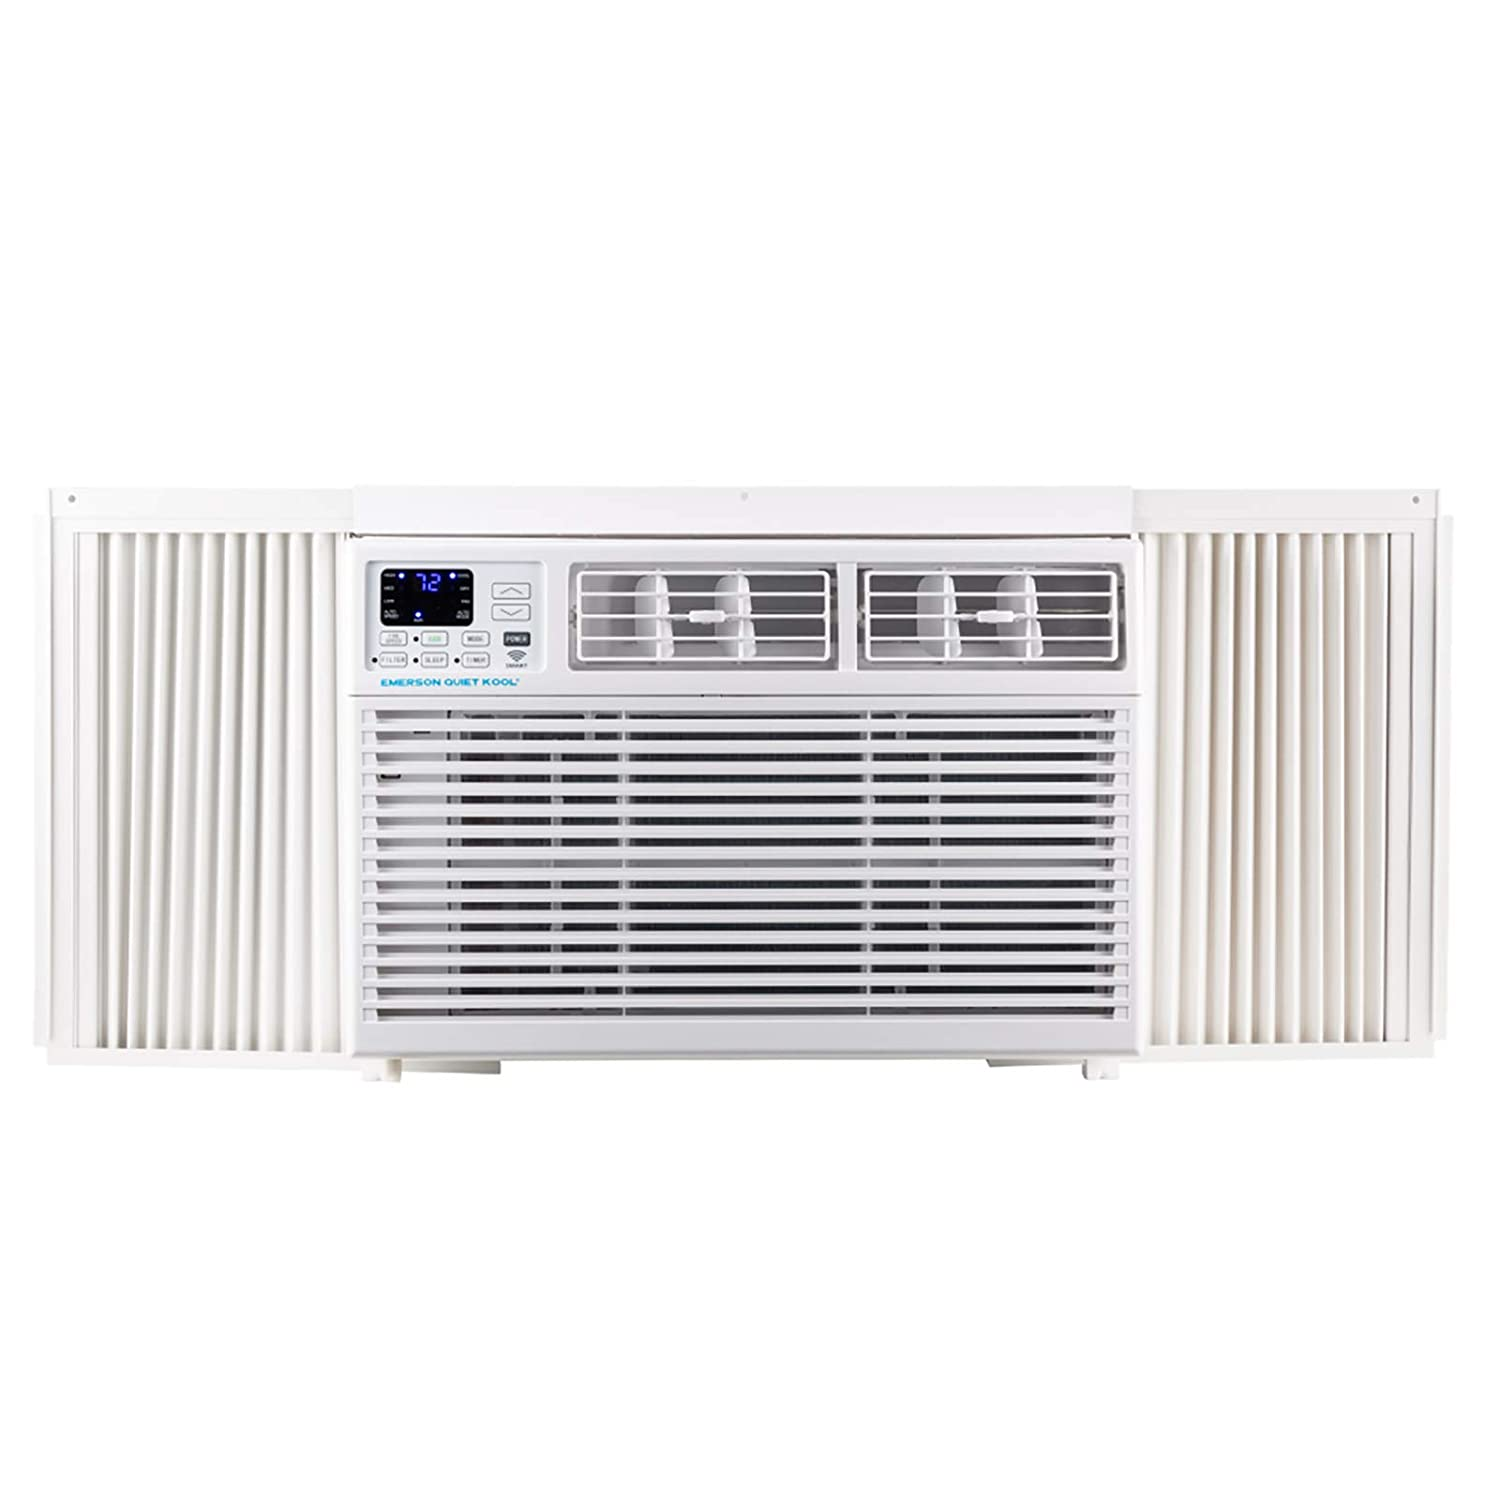 Emerson Quiet Kool EARC8RSE1 8000 BTU 115V WiFi White Window Air Conditioner with Remote Control with Smart Wi-Fi